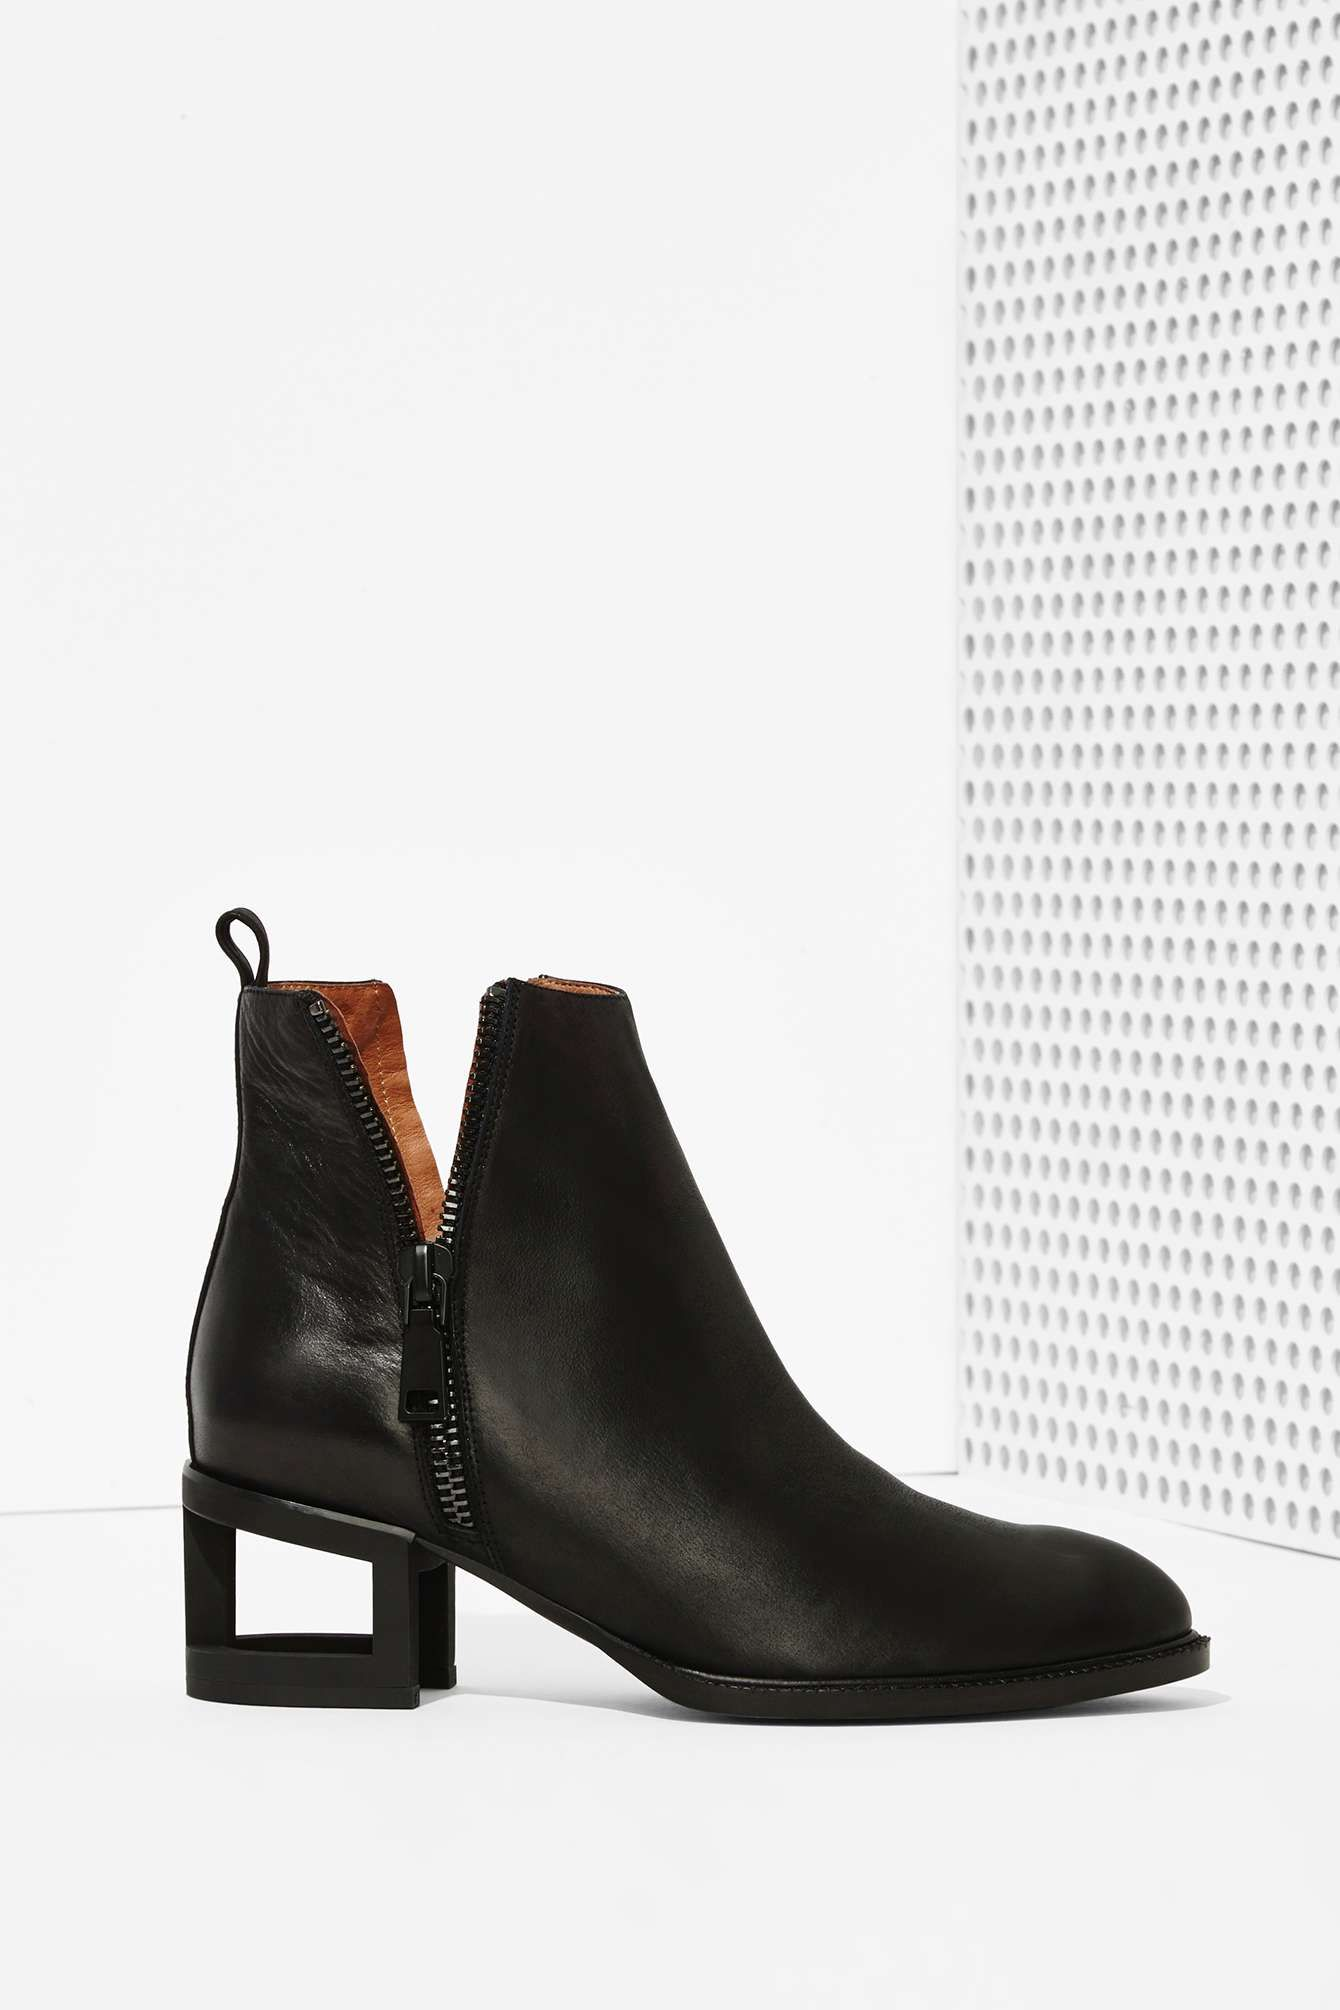 cfbfe6751 Jeffrey Campbell Boone Leather Bootie - Blackout | Outfit | Pinterest